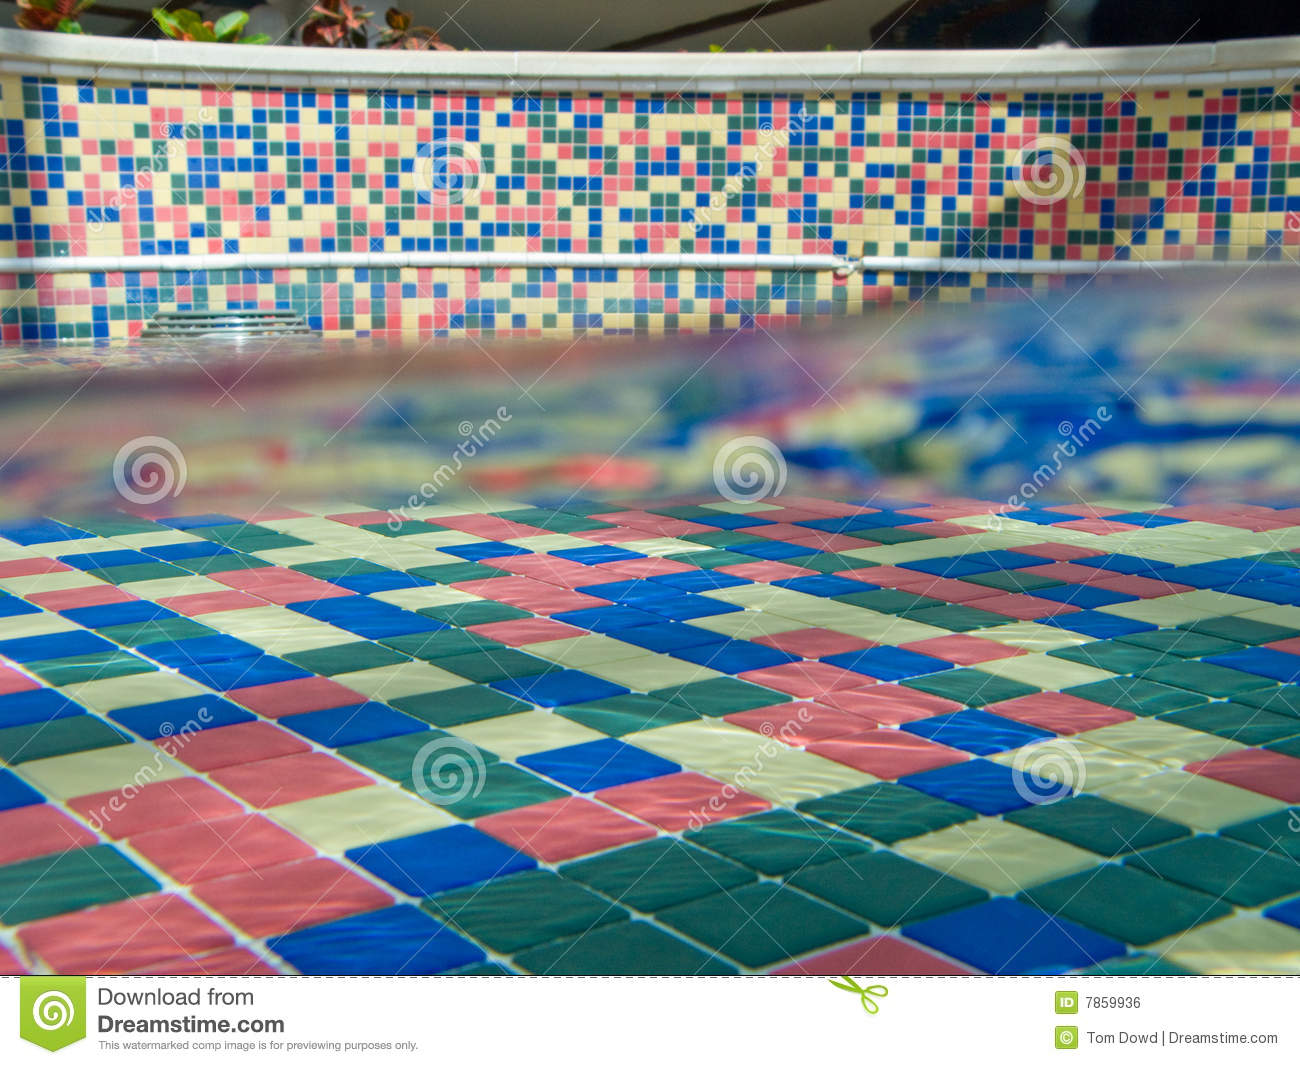 Colorful tiled pool stock photo. Image of background, color - 7859936